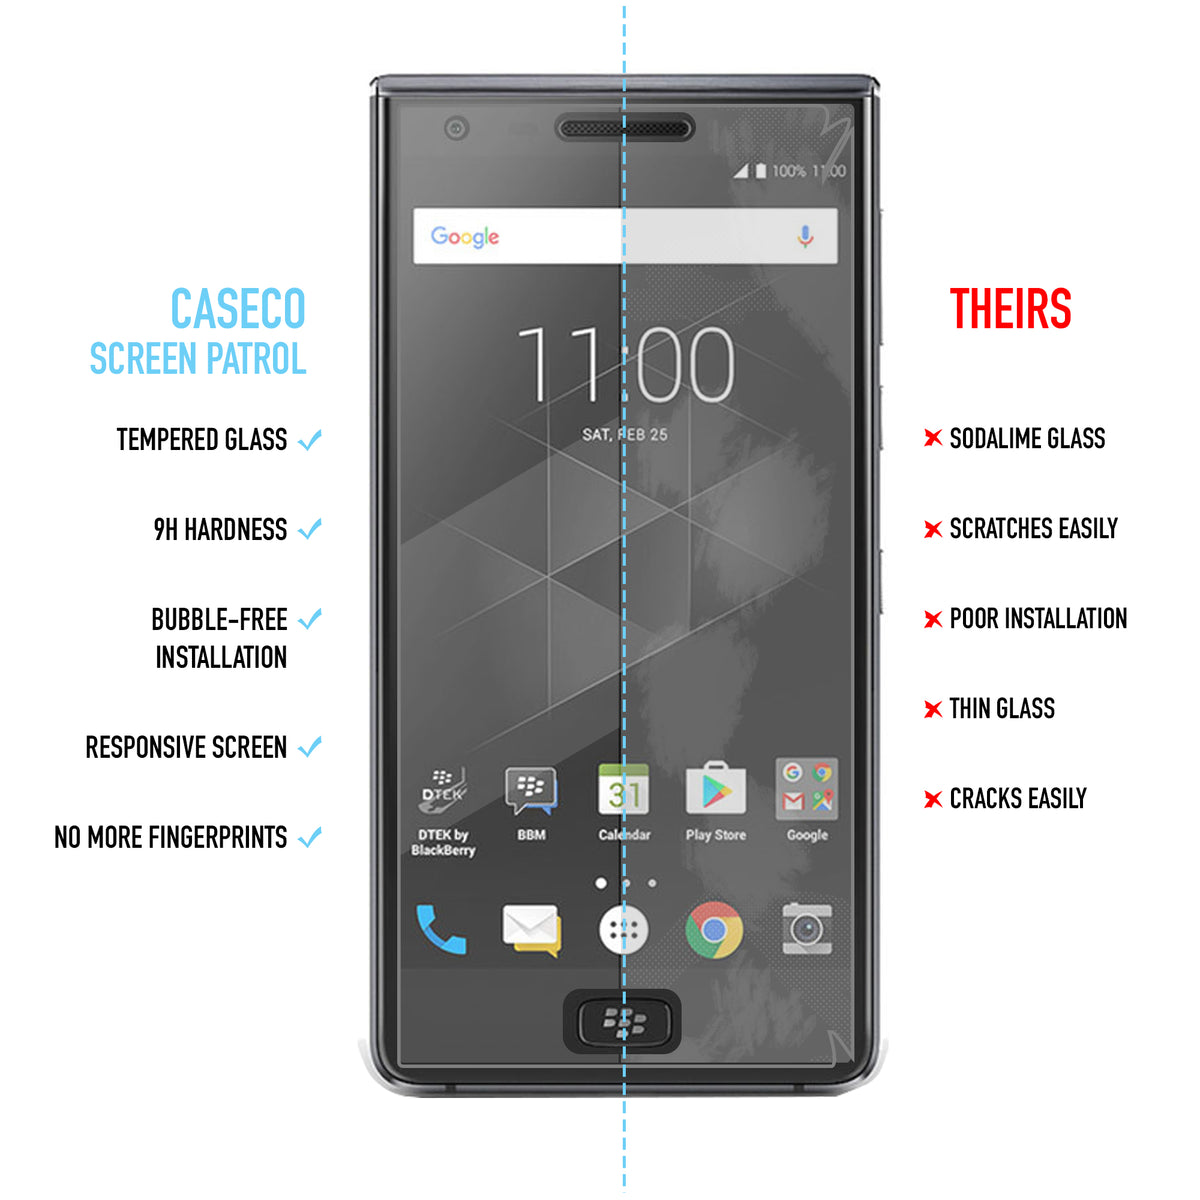 Screen Patrol - Tempered Glass - BlackBerry Motion